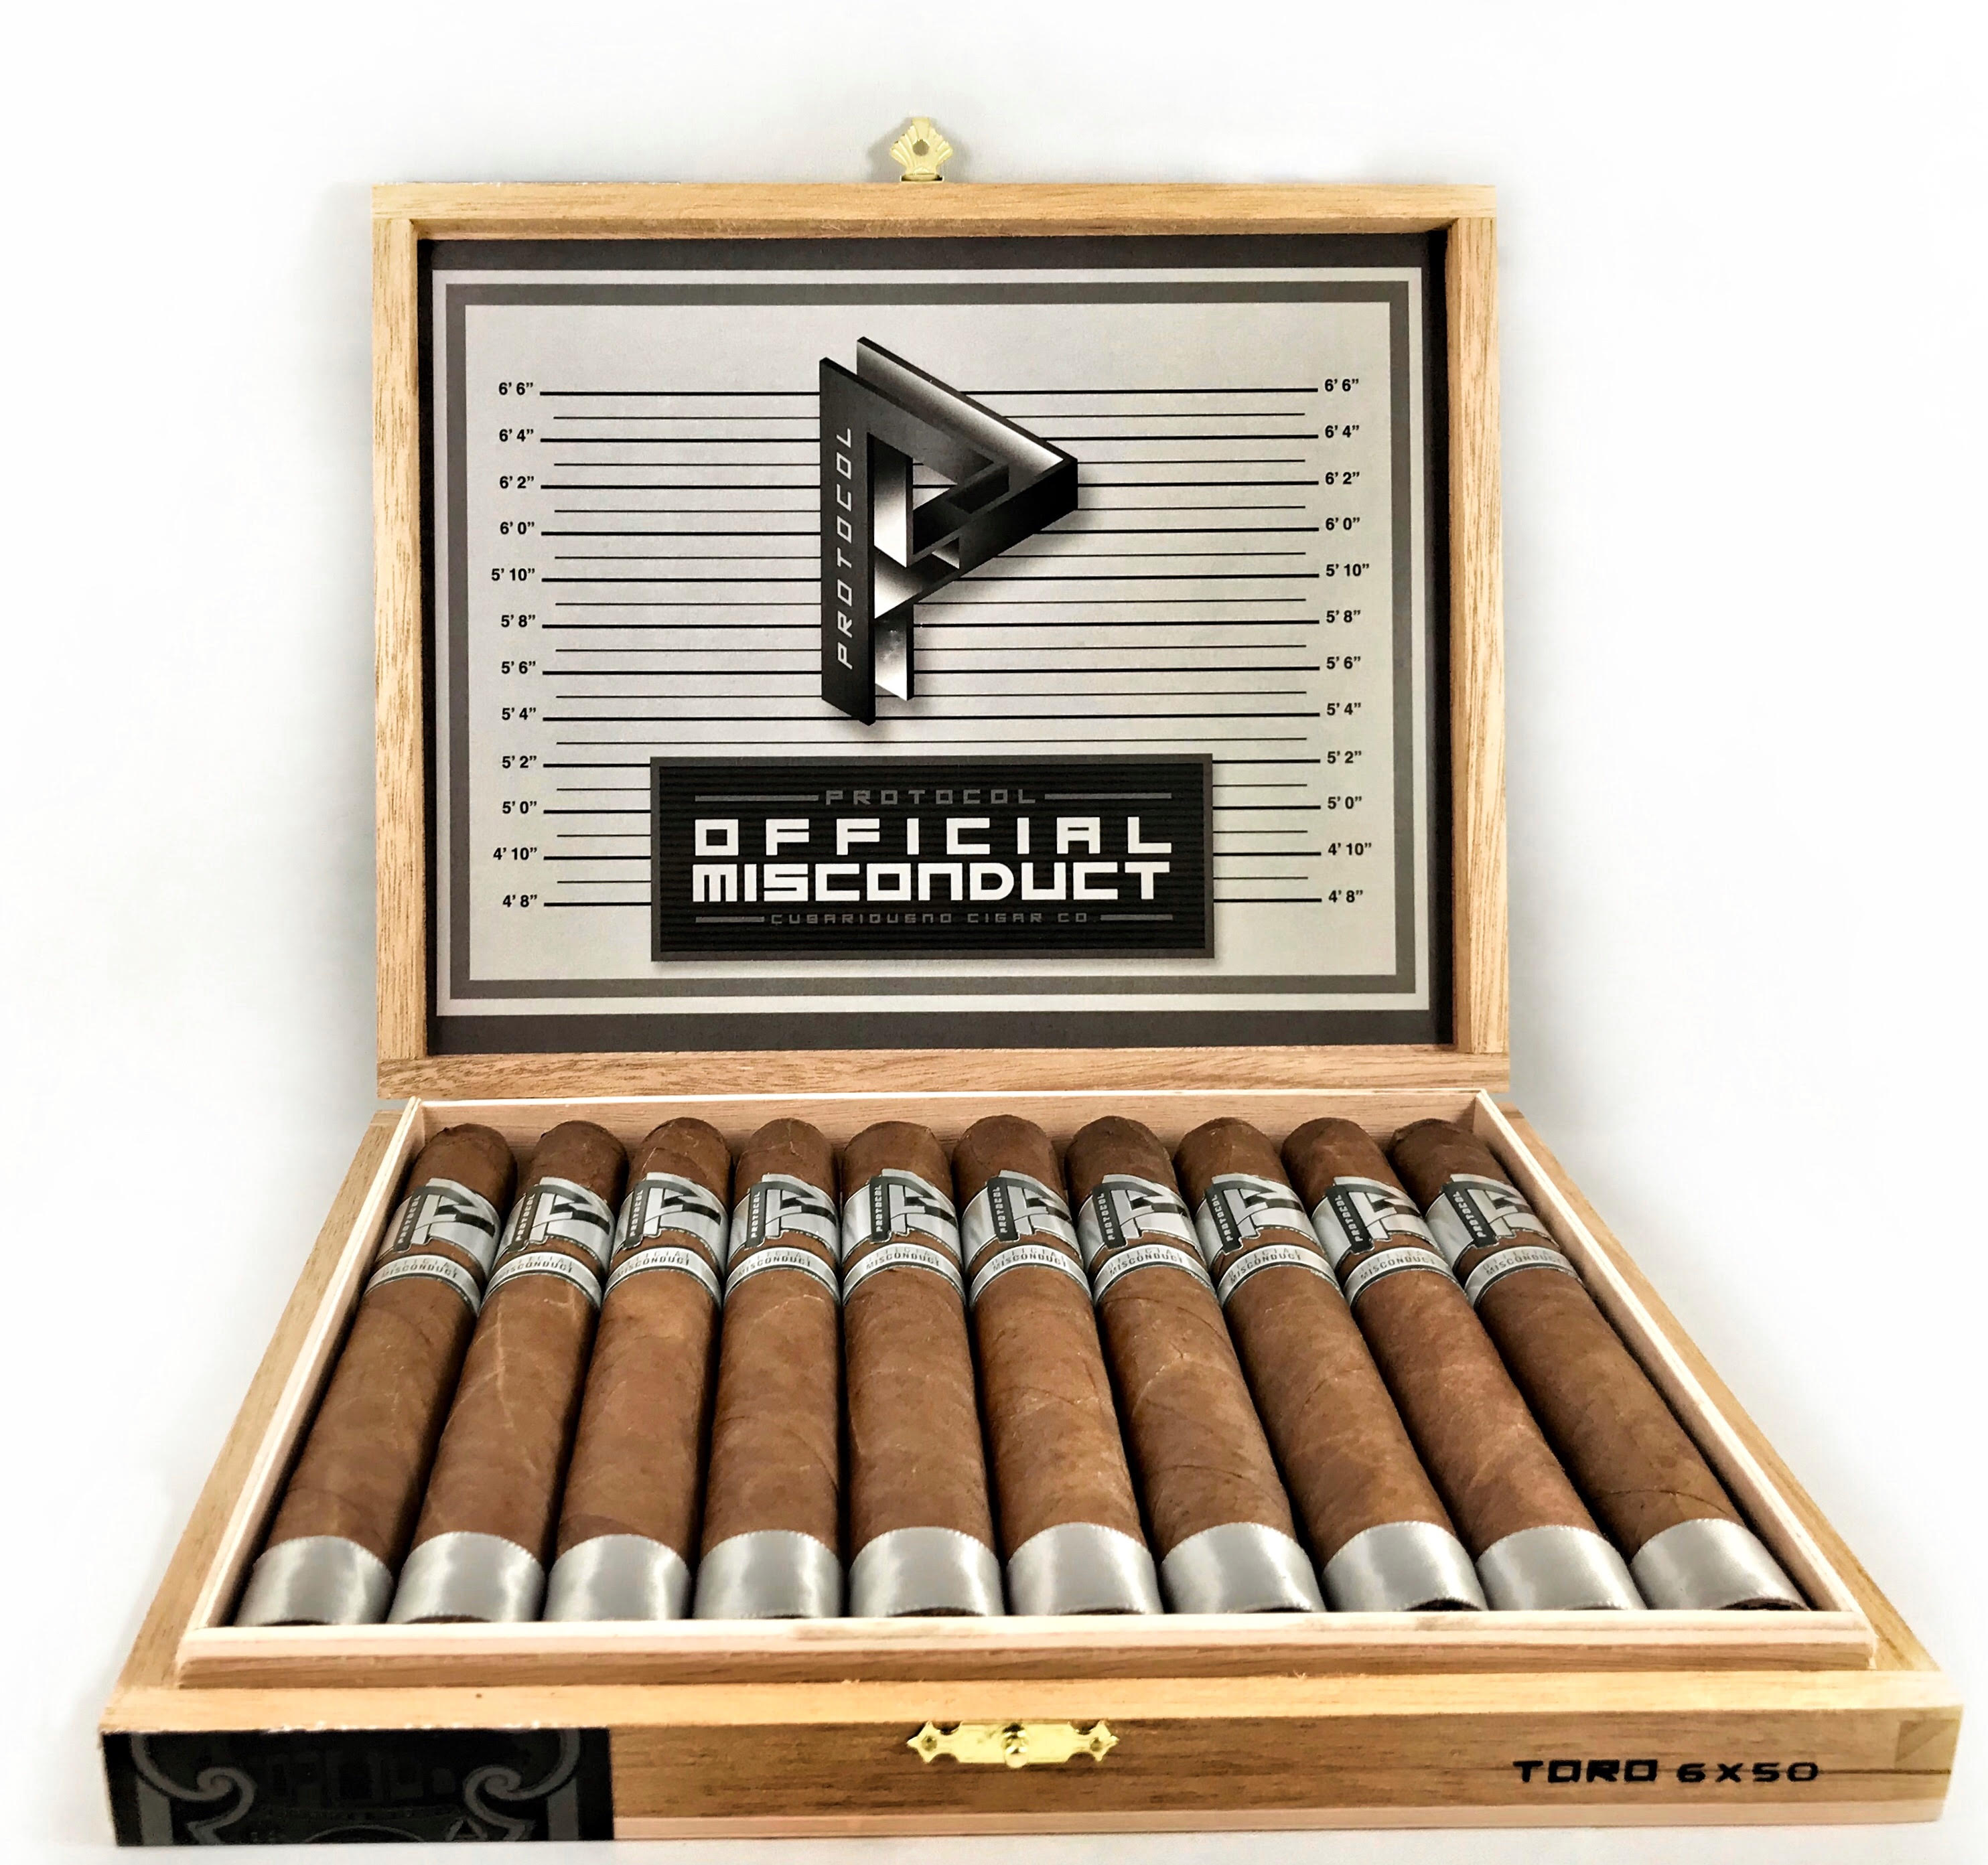 Cigar News: Cubariqueño Cigar Company to Introduce Fourth Line with Protocol Official Misconduct